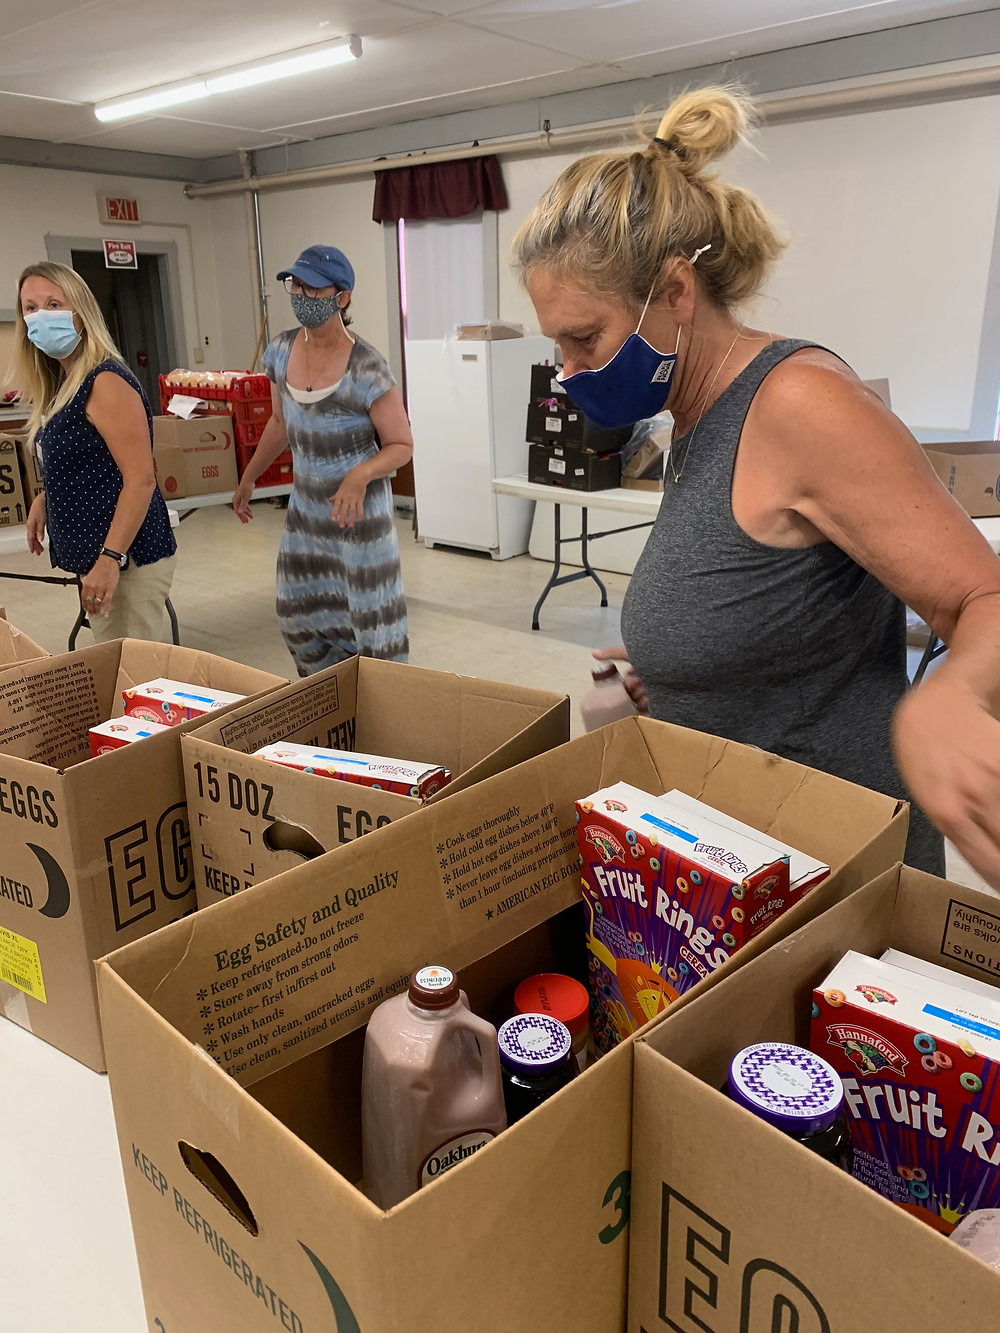 Dawn McGlaughlin, in a grey shirt, reviews contents of food boxes for the Free Summer Meal Program with additional volunteers to her side. Food items include milk, cereal, clementines, mac n cheese.